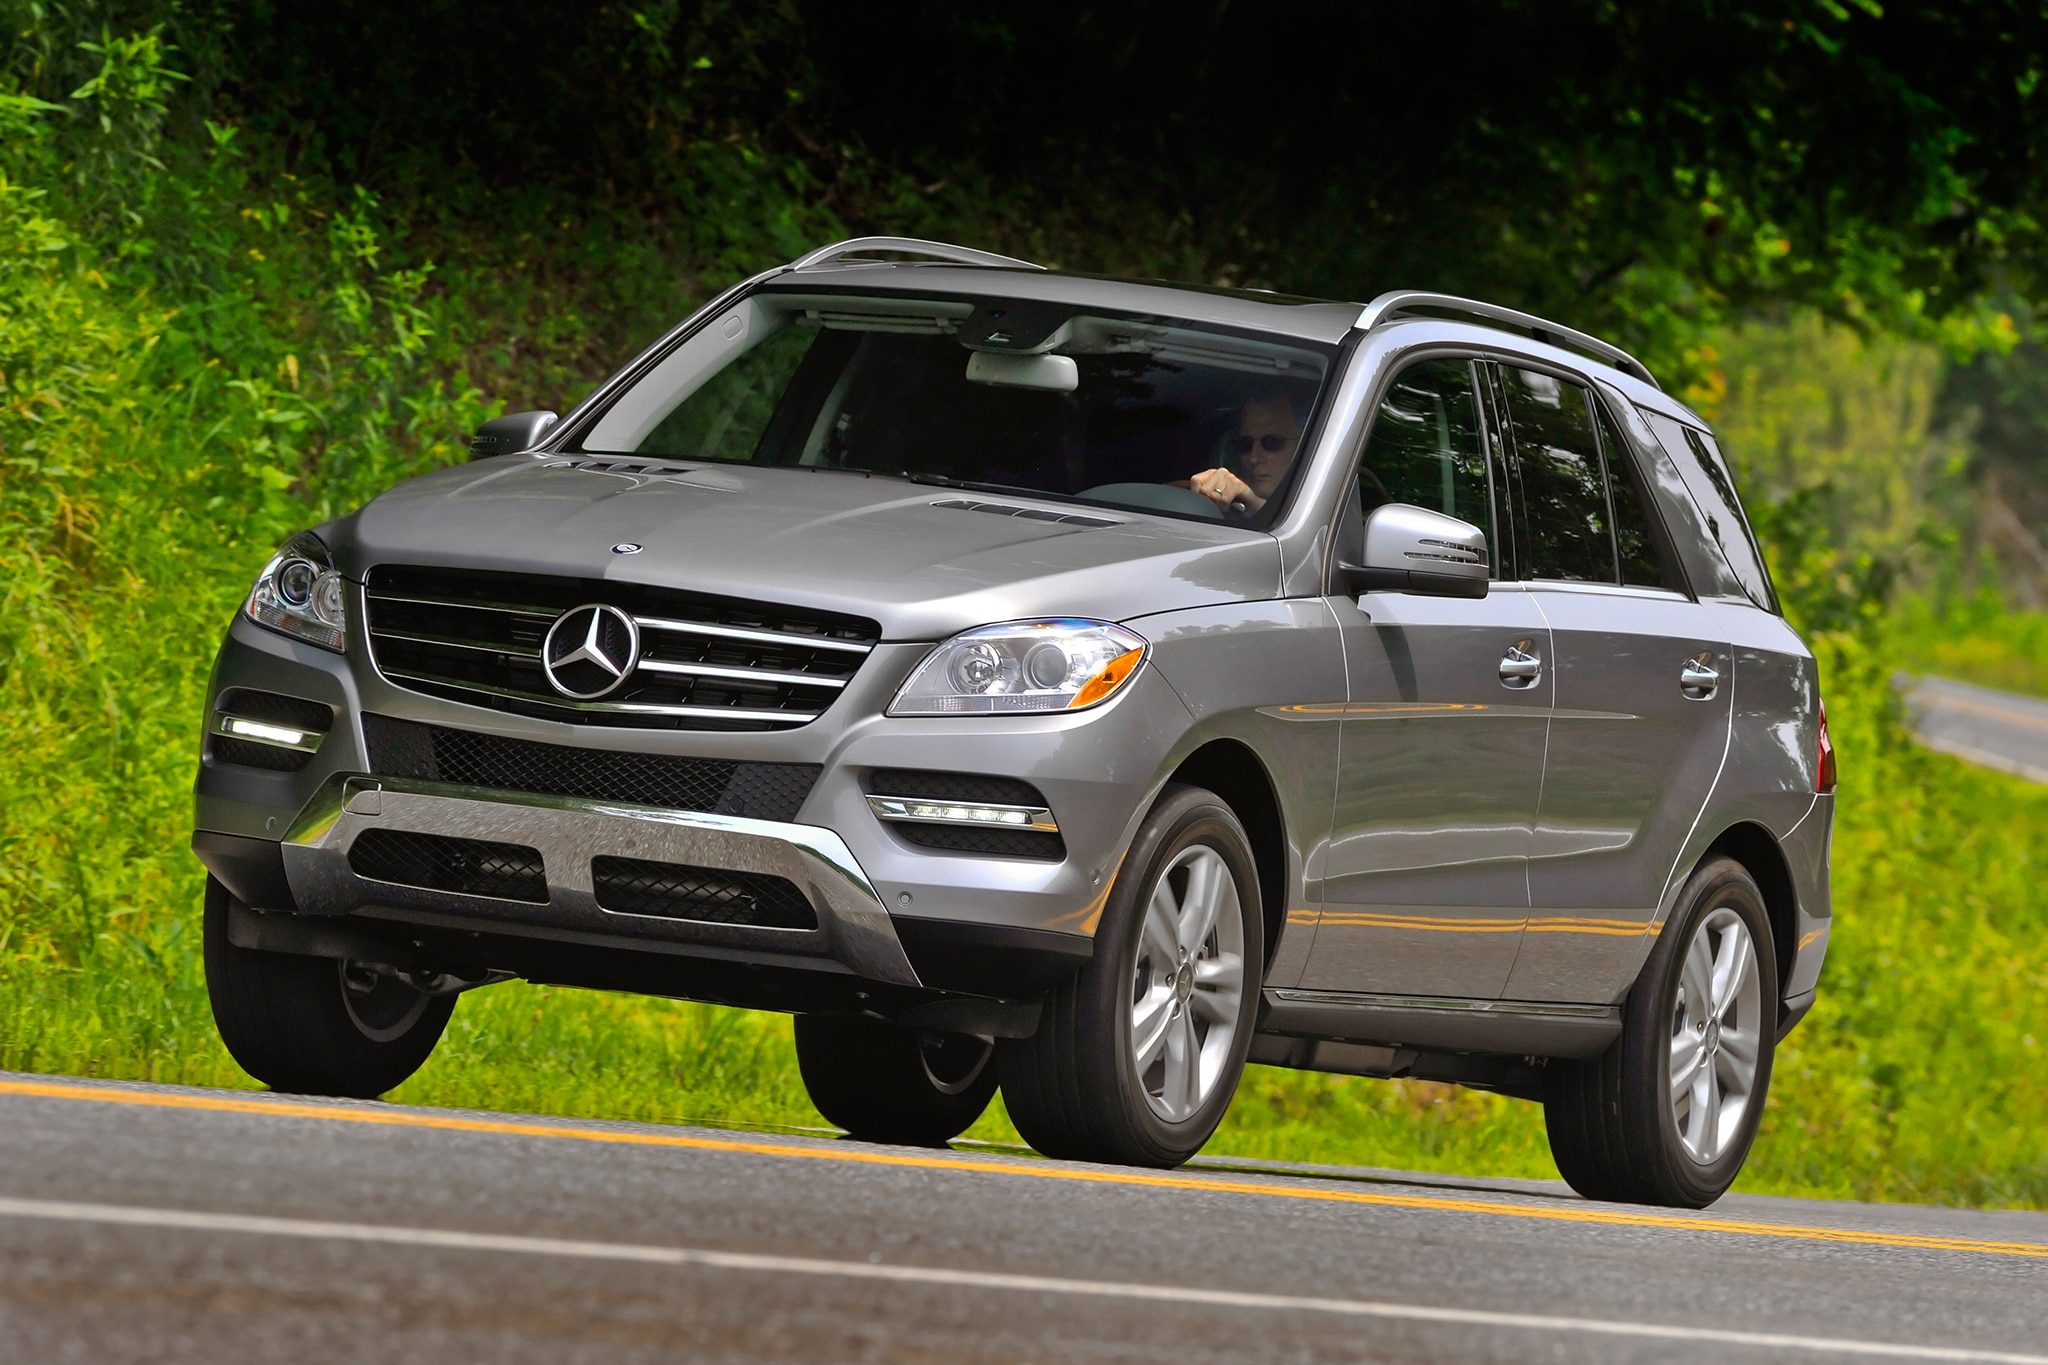 2014 Mercedes Benz ML350 4MATIC Front Three Quarters In Motion Low1